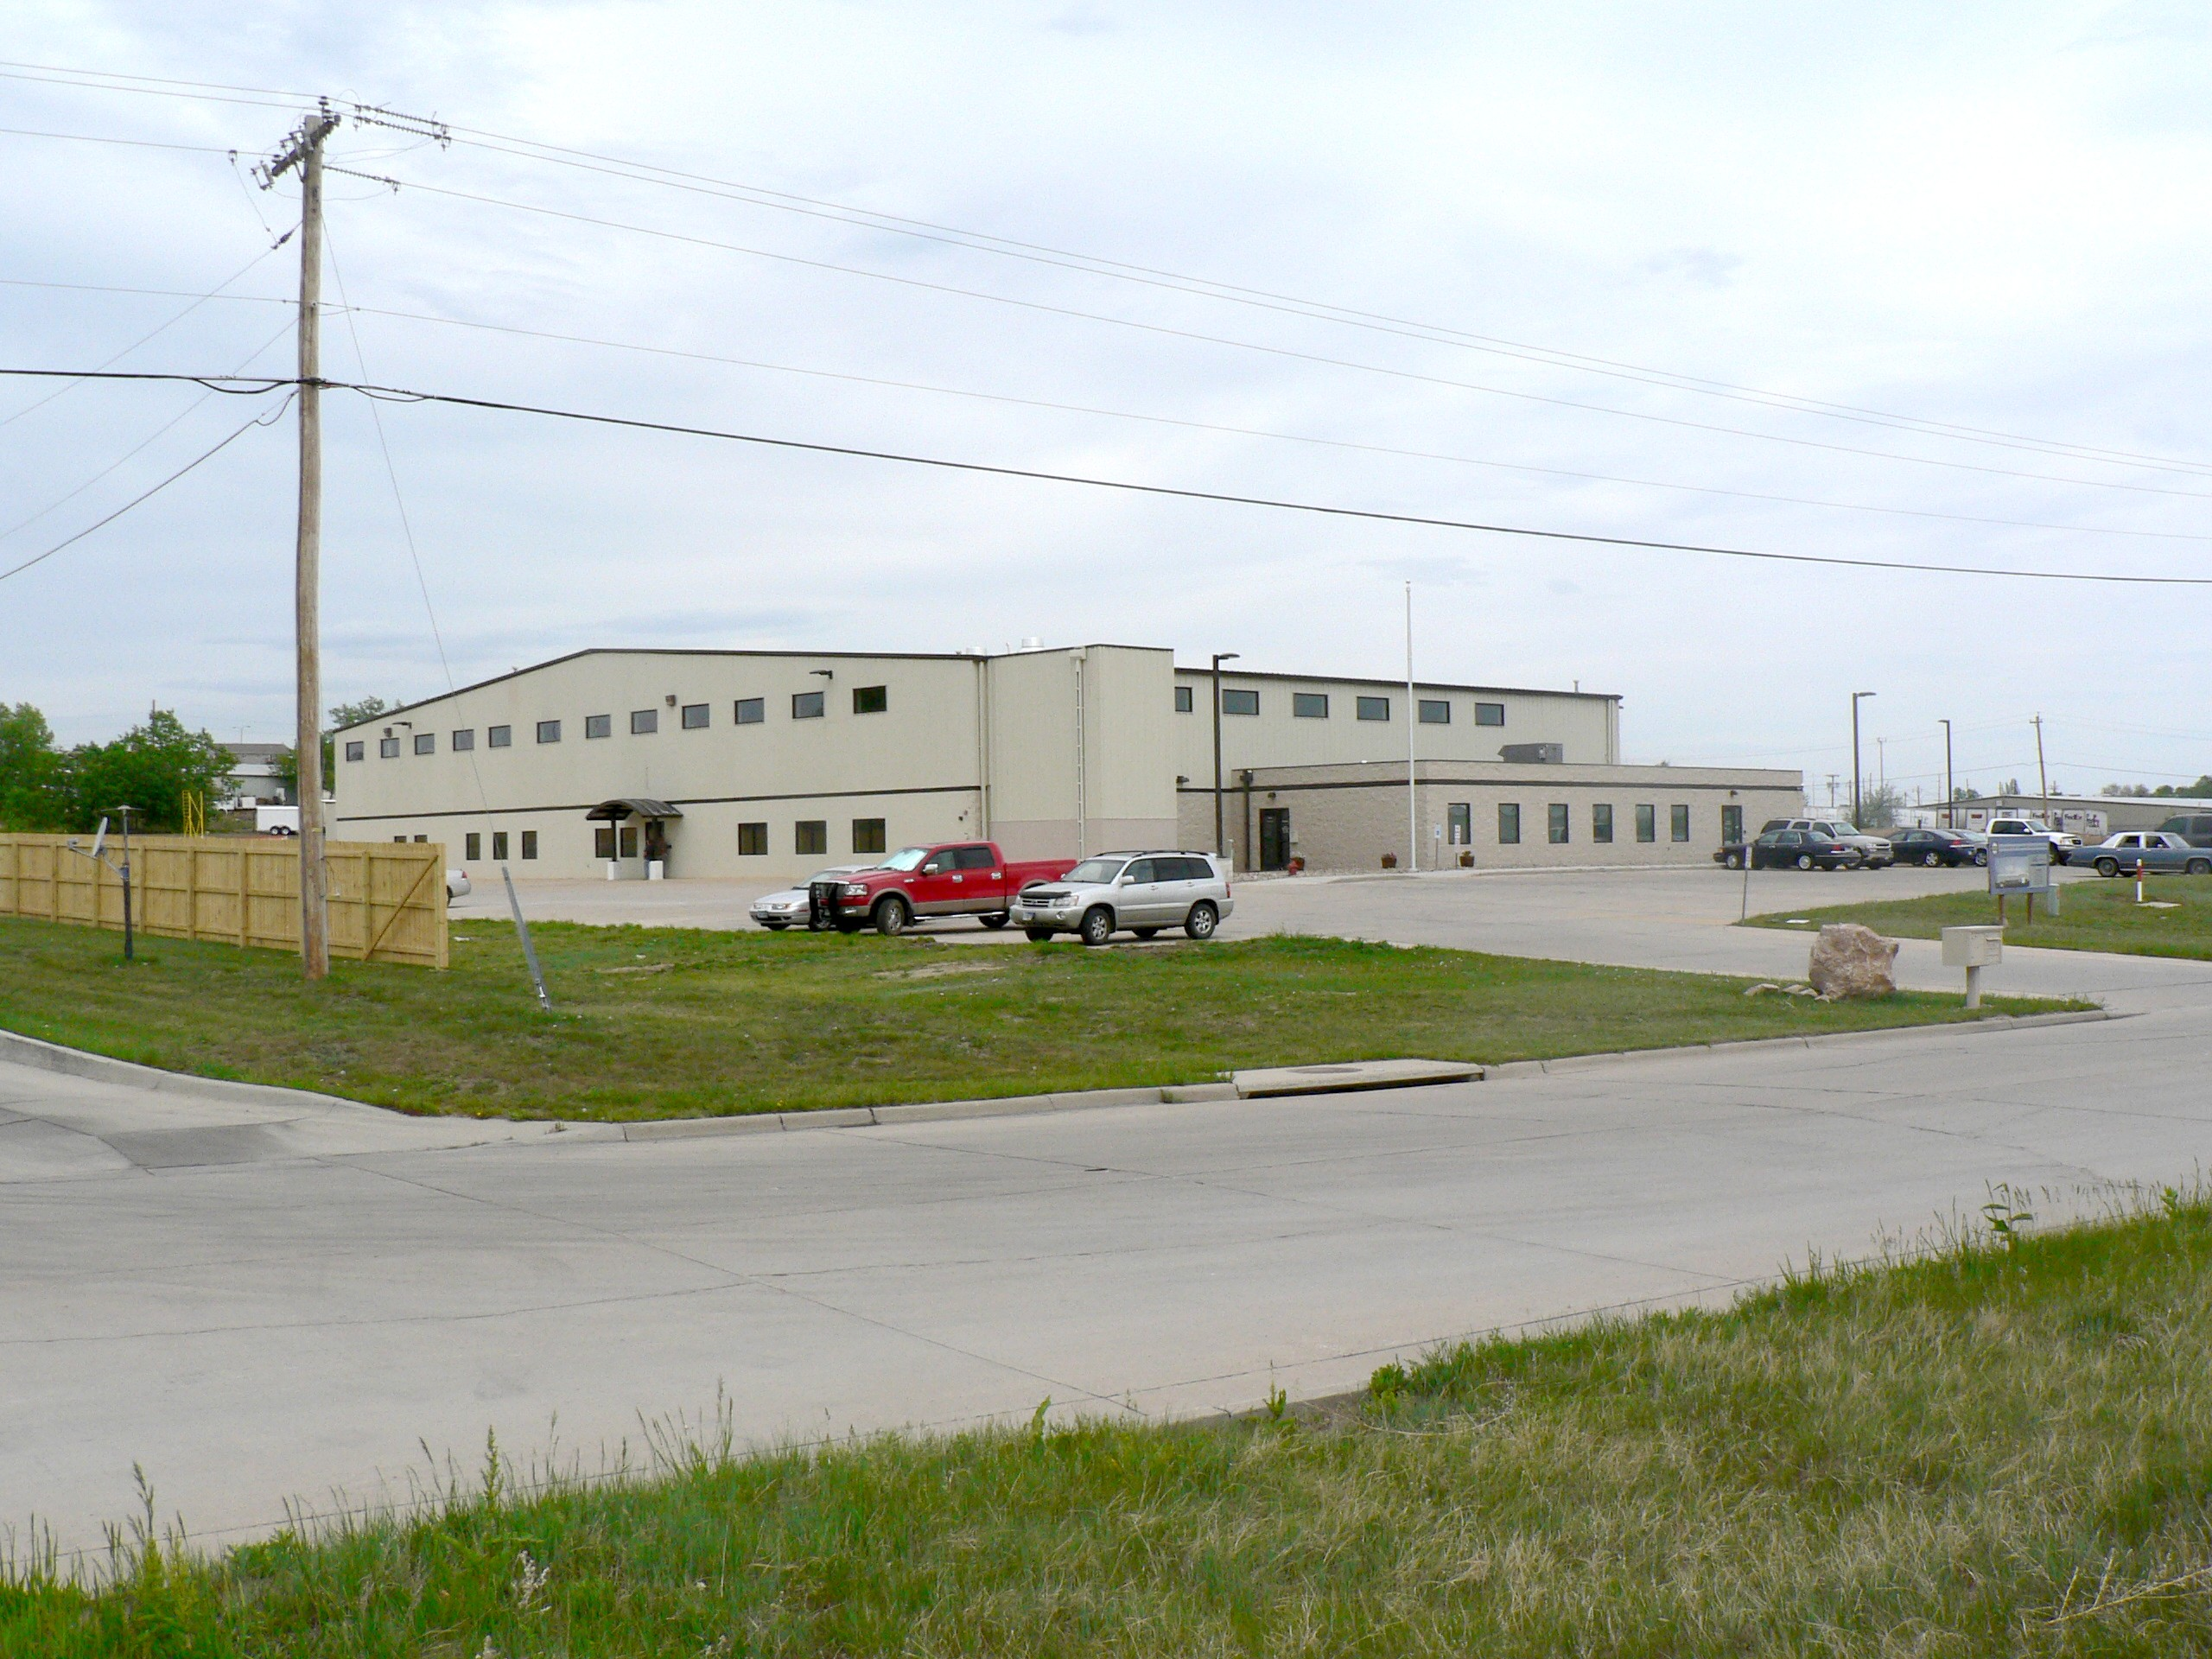 The exterior view of the Black Hills Correctional Transition Center.